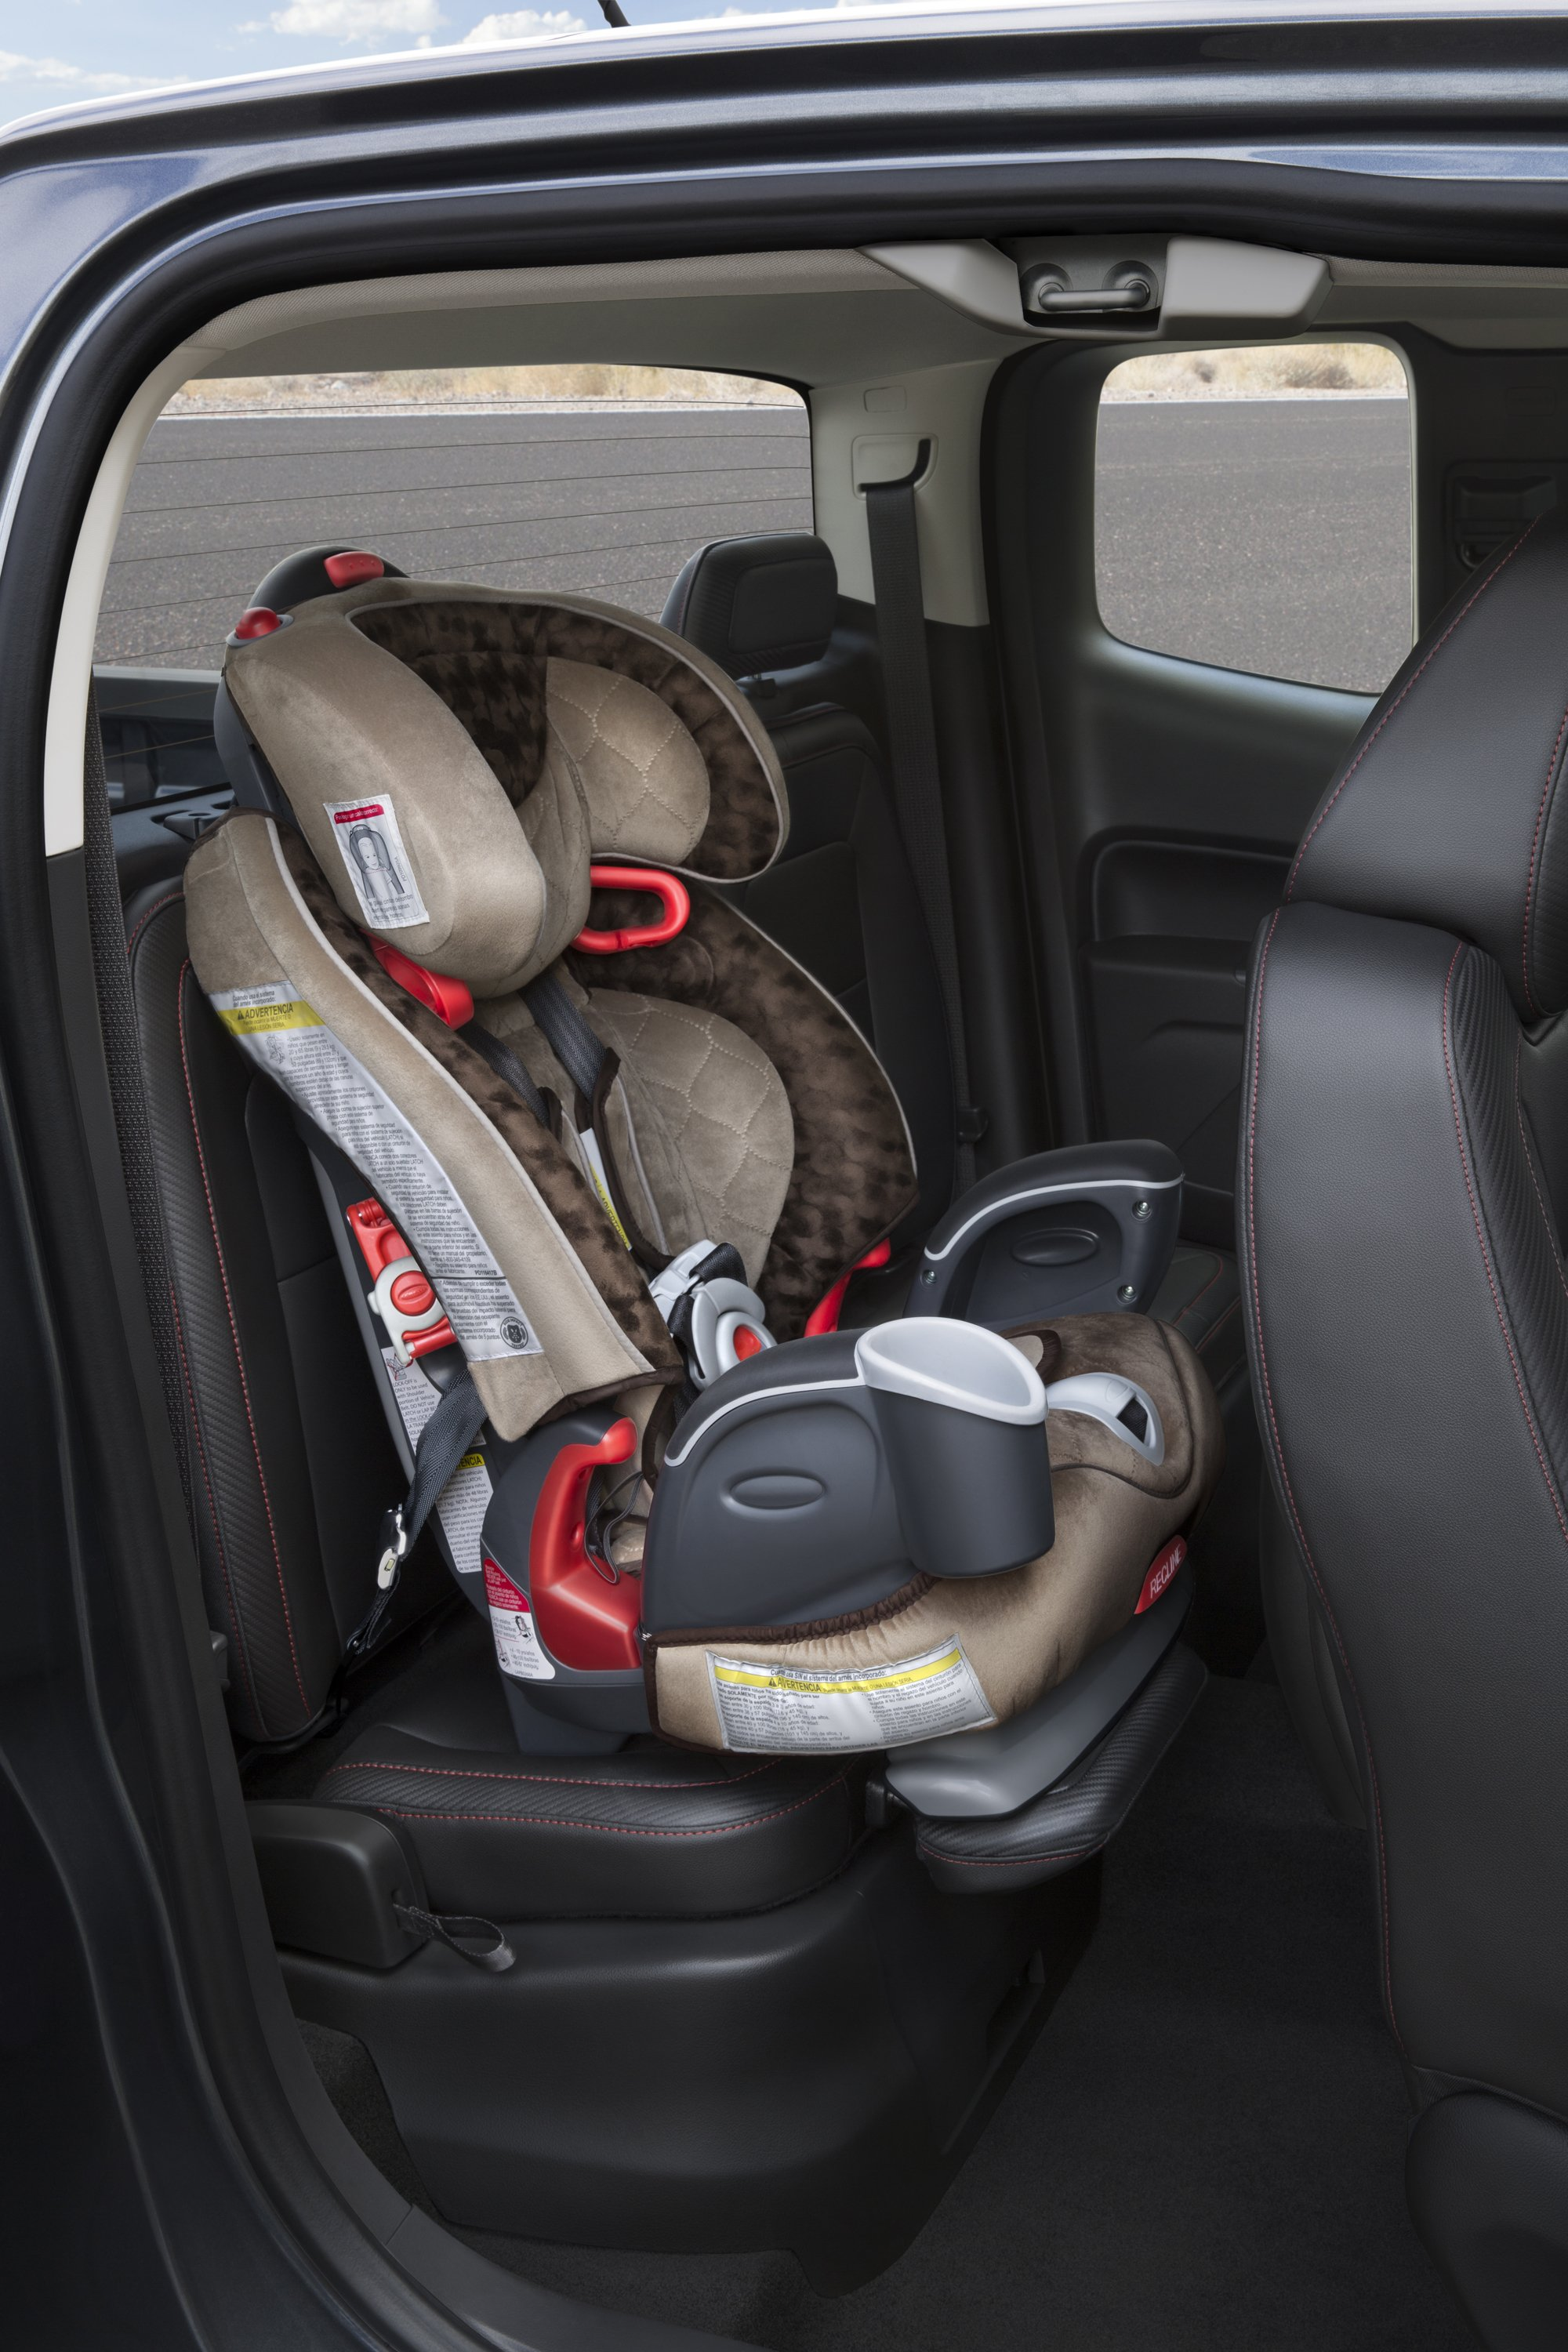 Canyon drivers can use the headrest as a seat support when installing a child seat. Simply detach and insert it into the seat base.